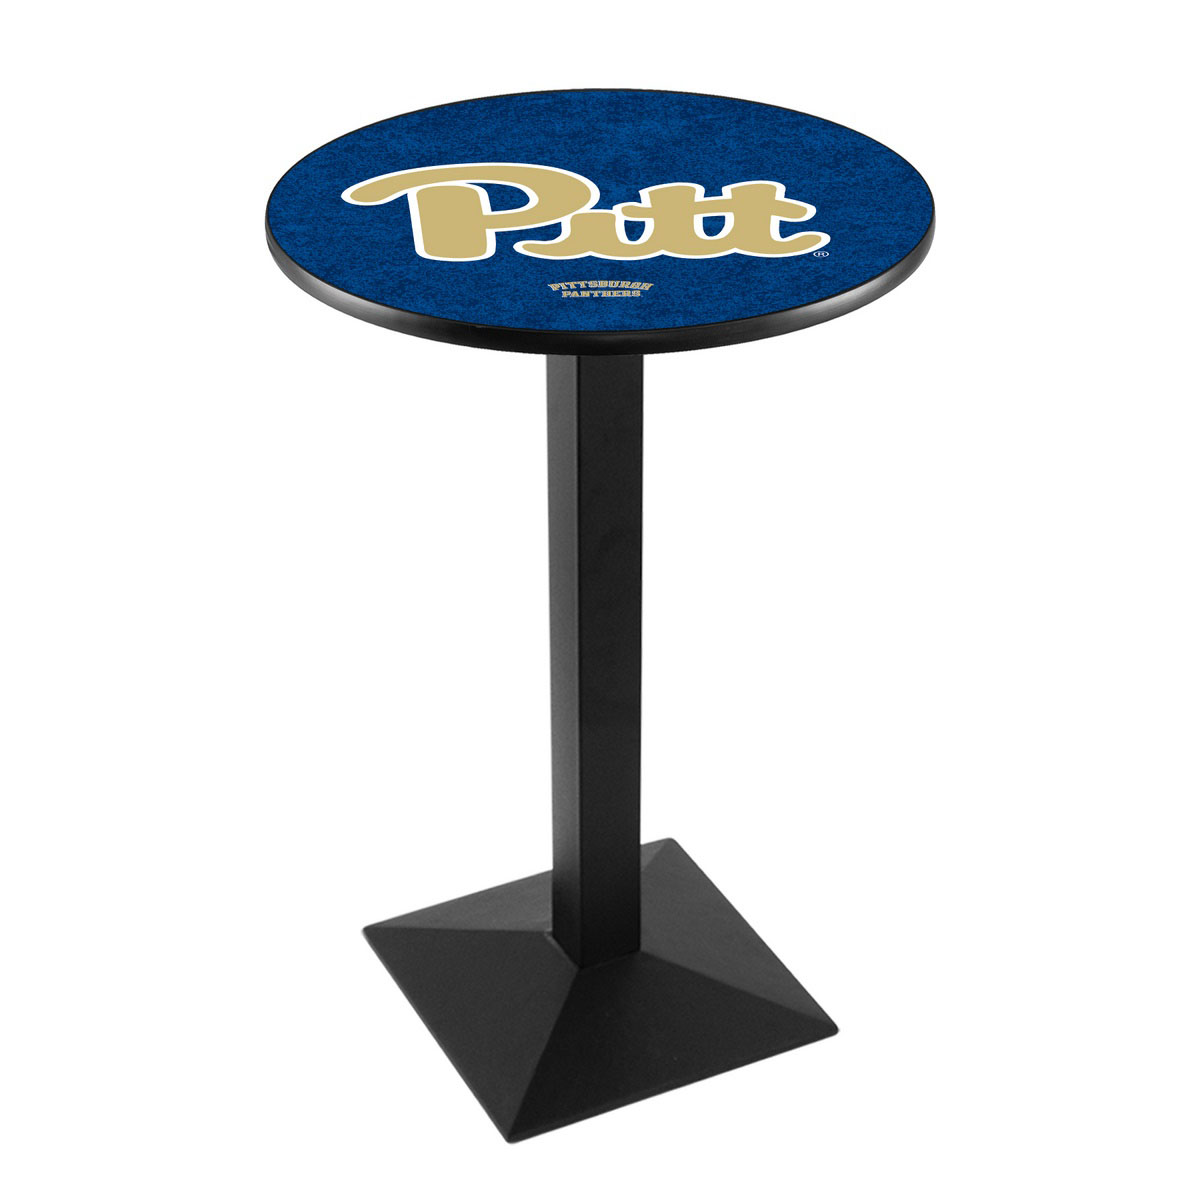 Popular University Pittsburgh Logo Pub Bar Table Square Stand 18 634